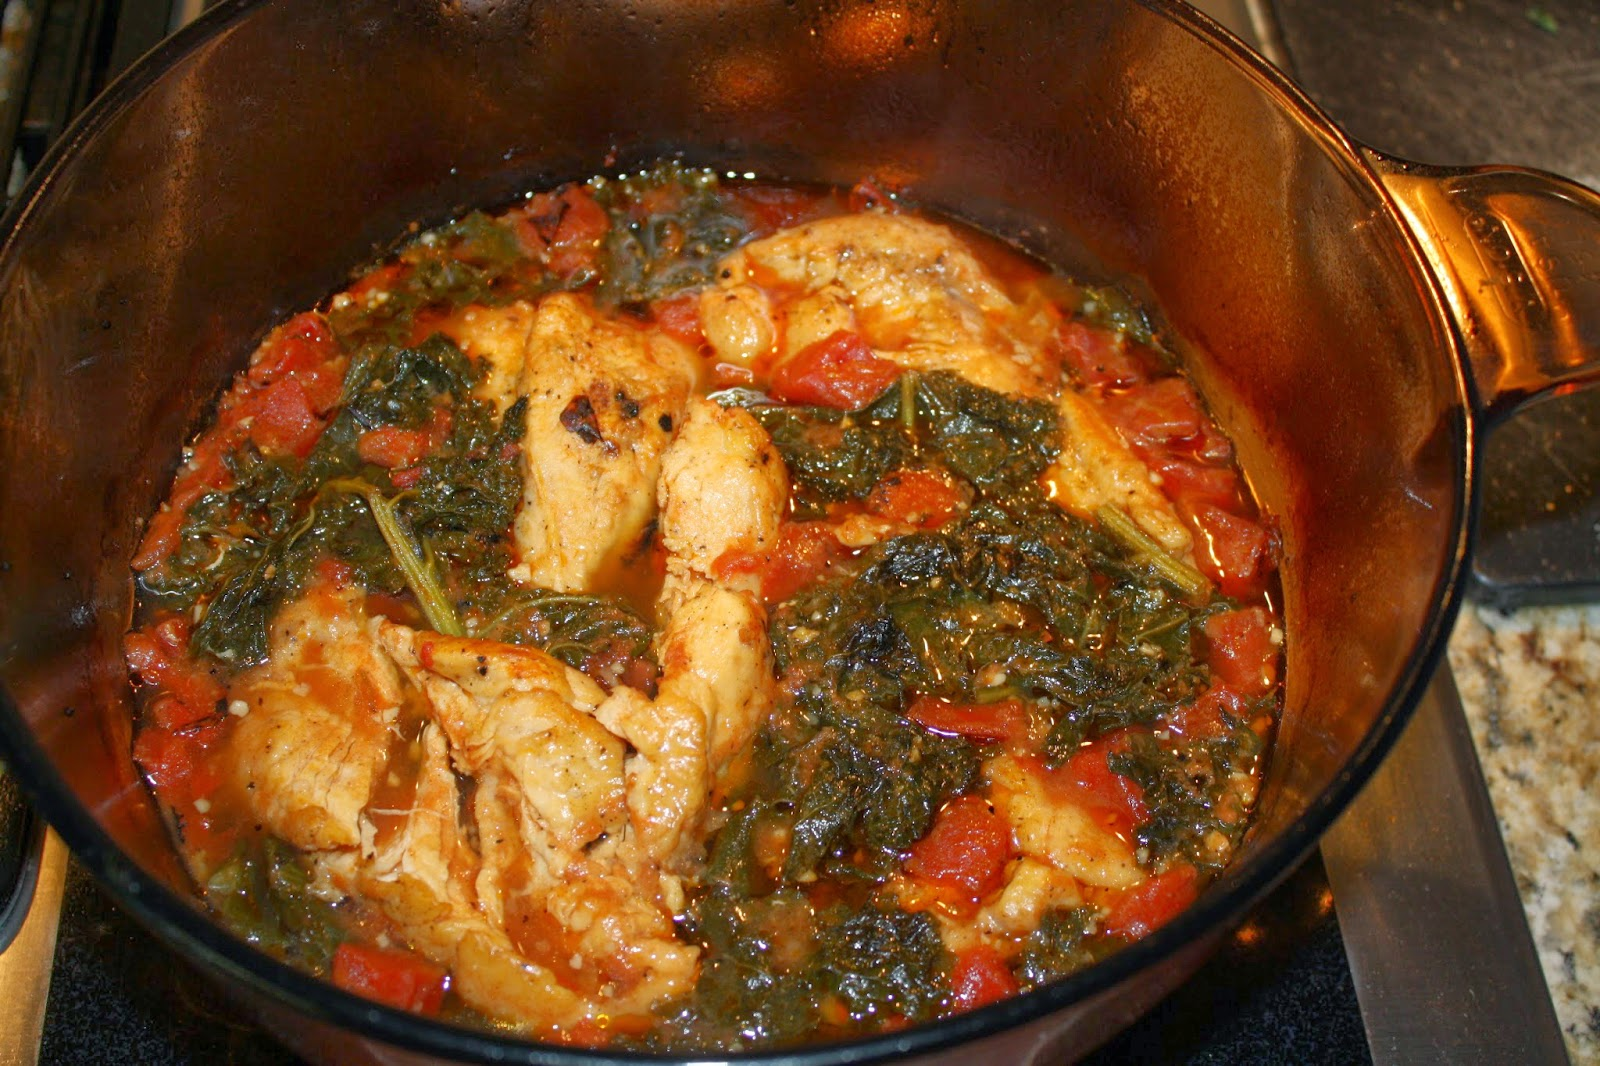 Wellness Witness: Braised Chicken with Tomatoes and Kale